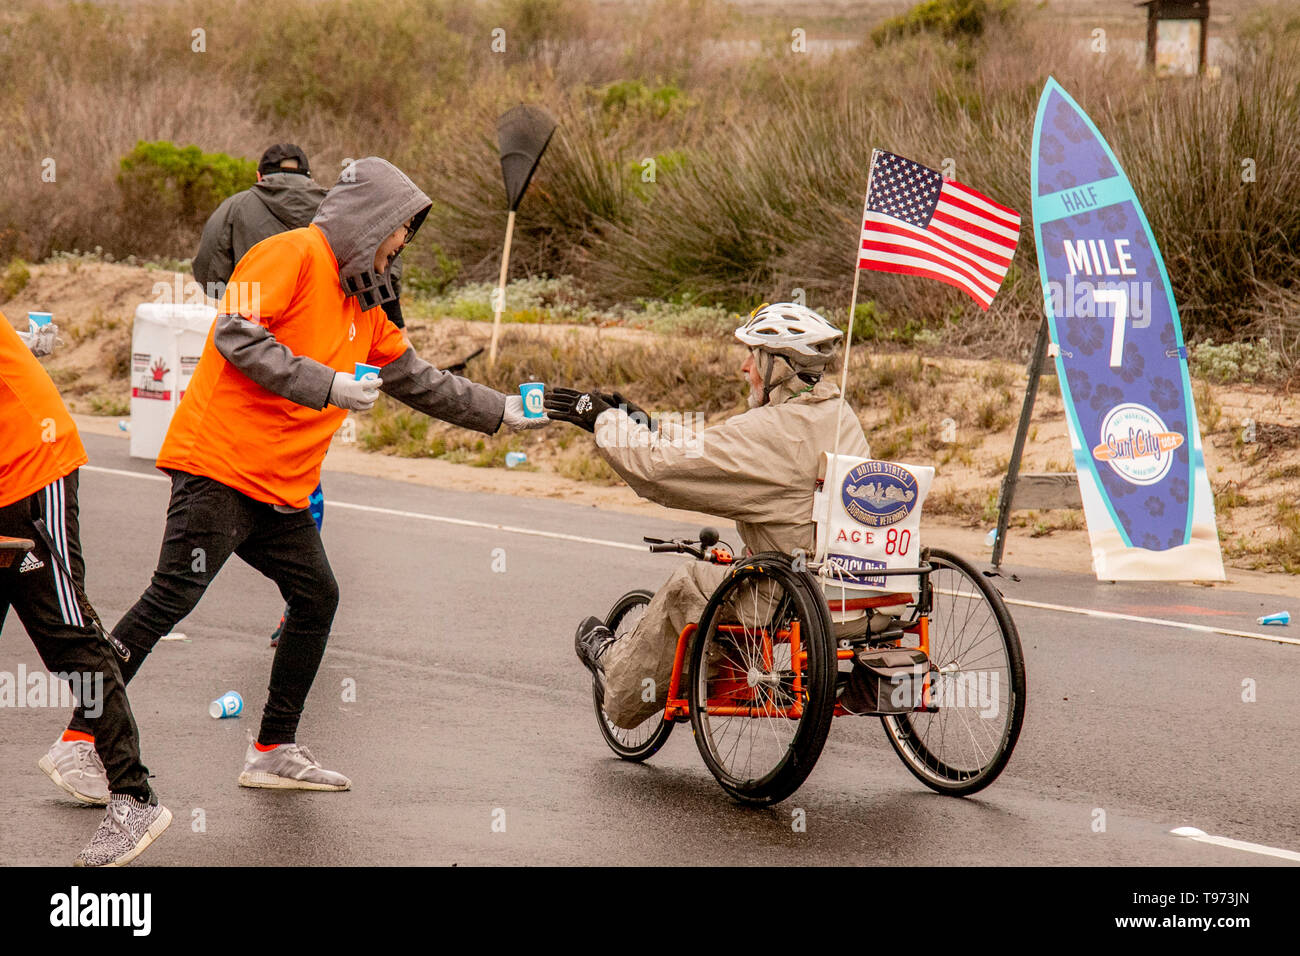 Riding a bicycle wheelchair, a determined 80-year-old man participates in a half marathon foot race in Huntington Beach, CA, as he reaches for a cup of water. - Stock Image